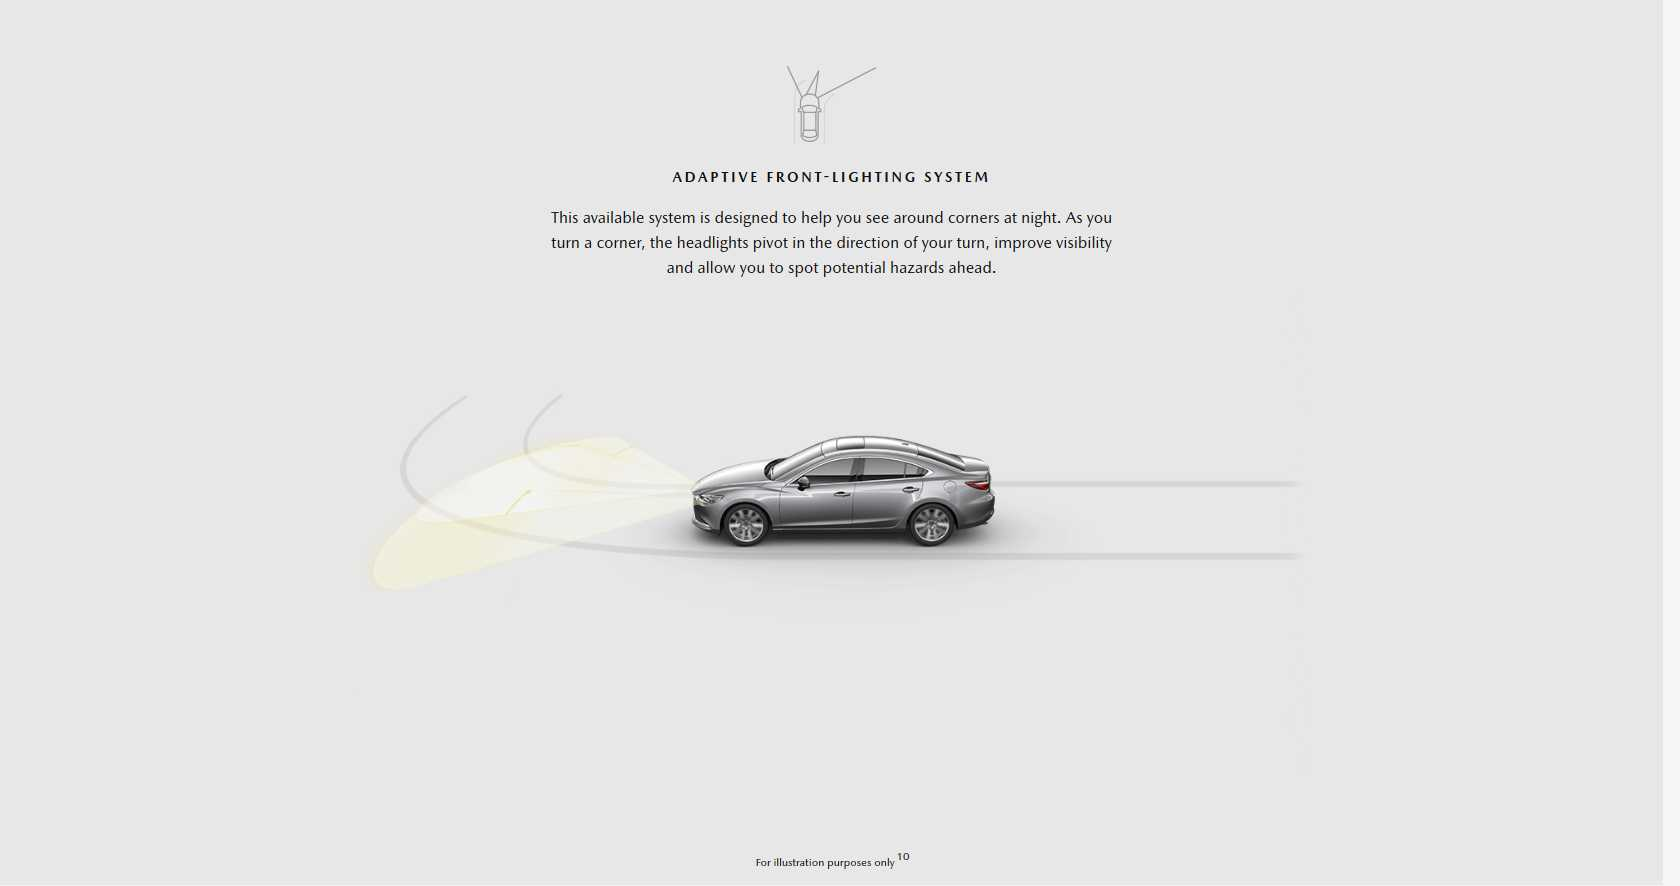 Adaptive Front-lighting system